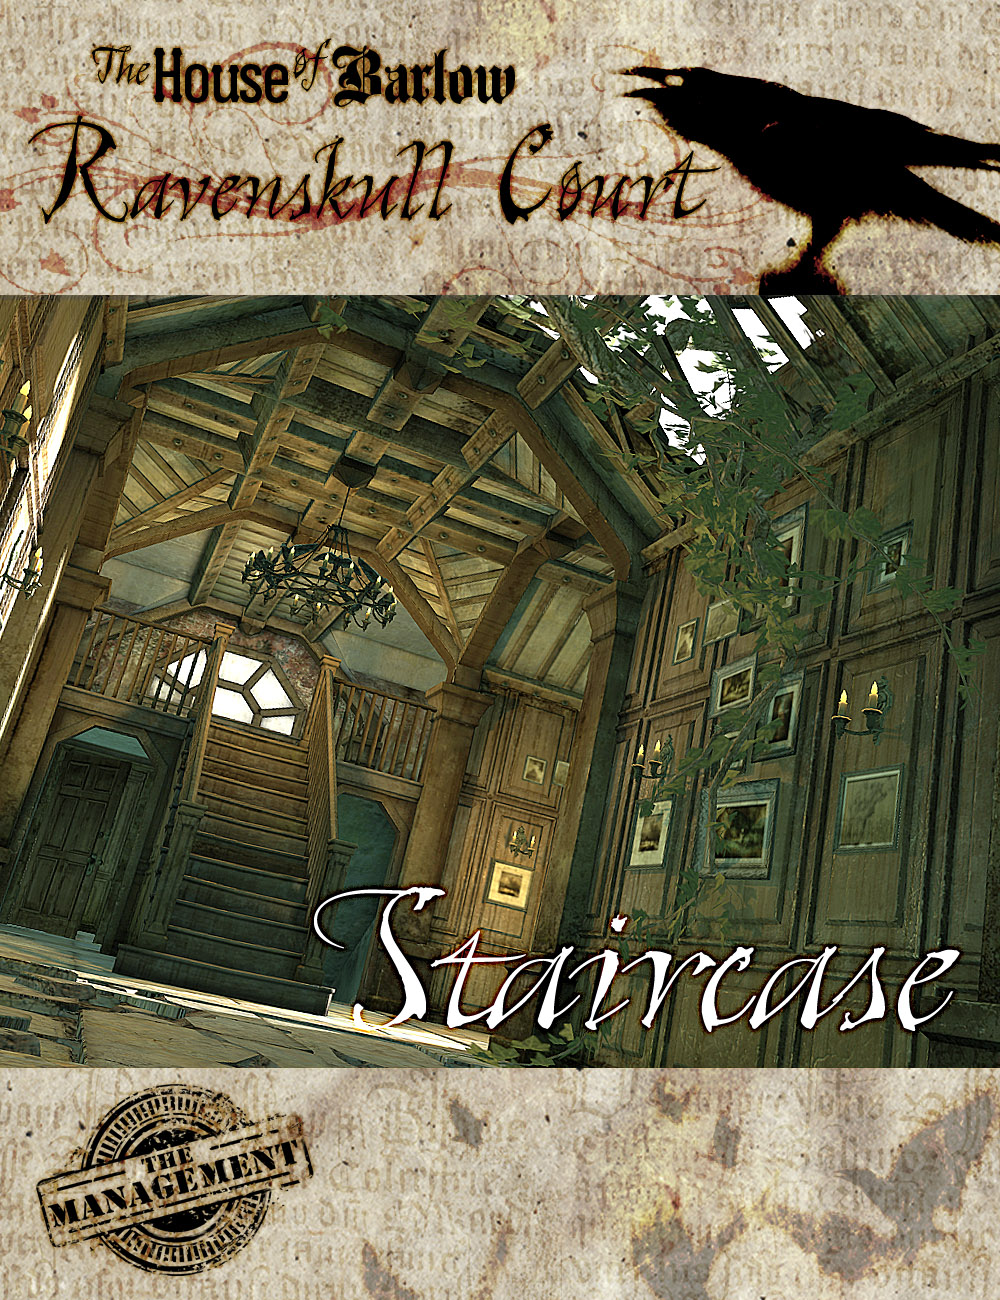 The Barlow House Ravenskull Stair Hall by: The Management, 3D Models by Daz 3D